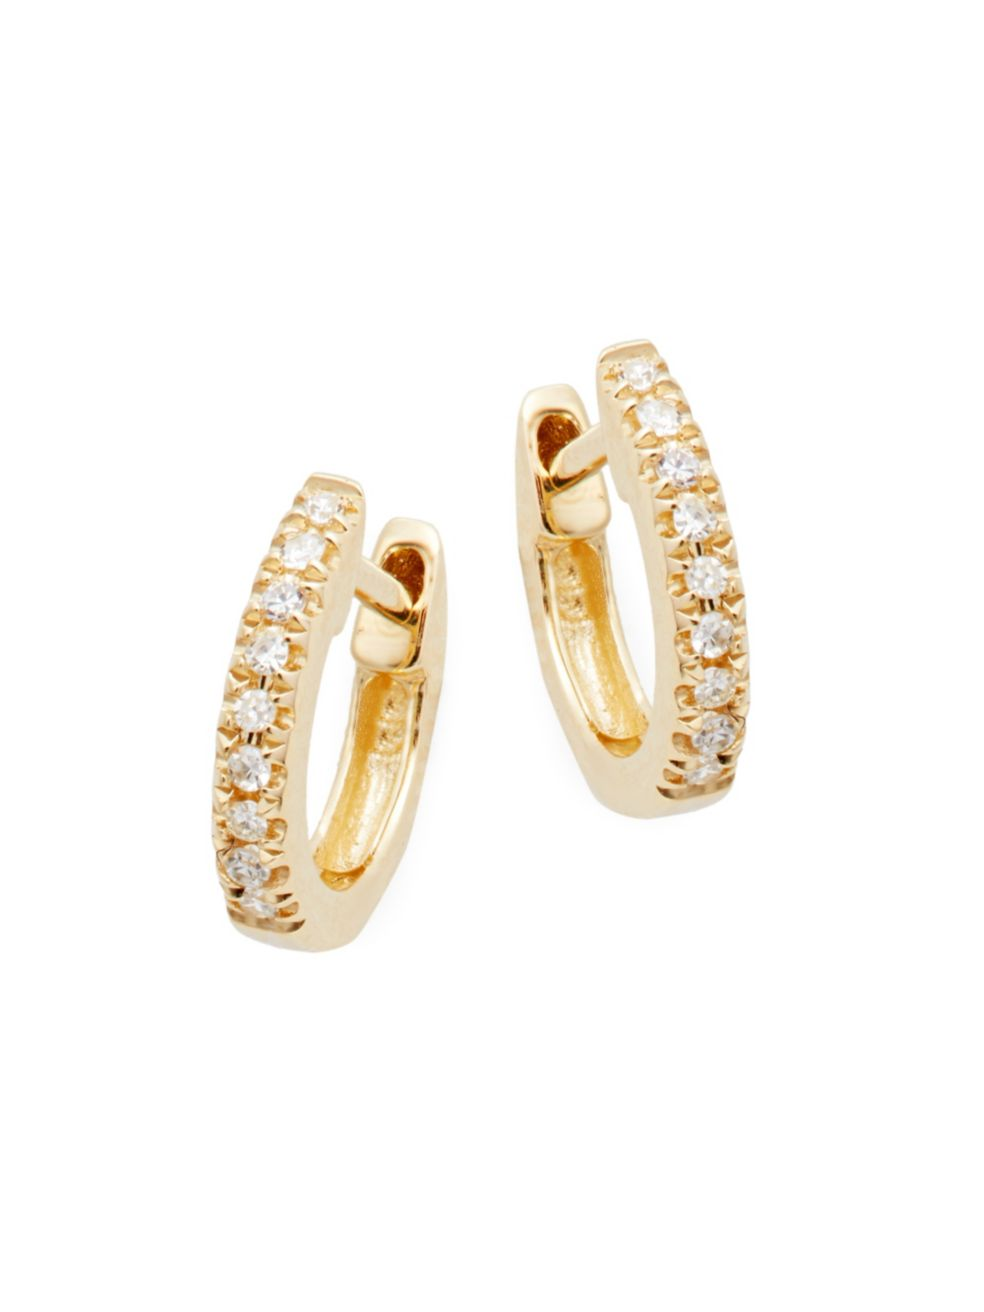 14K Yellow Gold & Diamond Huggie Hoop Earrings